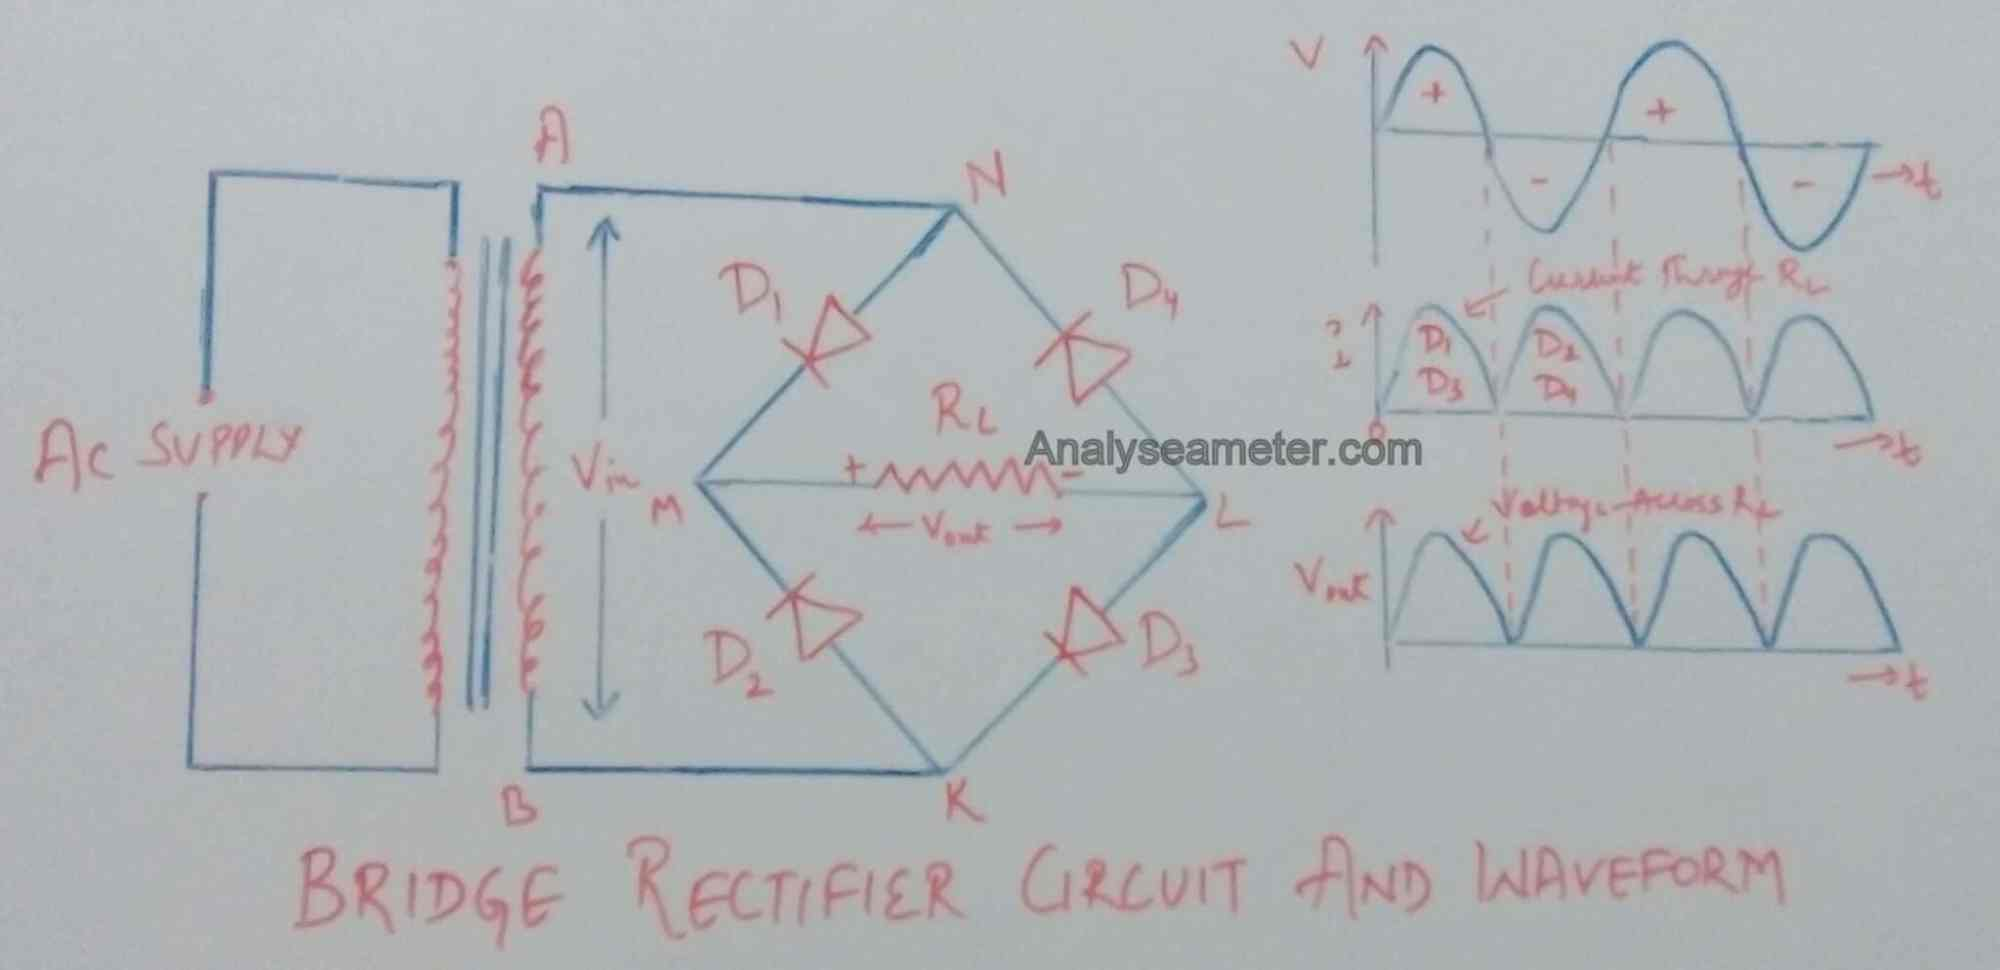 hight resolution of the circuit and waveform diagram of the full wave bridge rectifier is given below